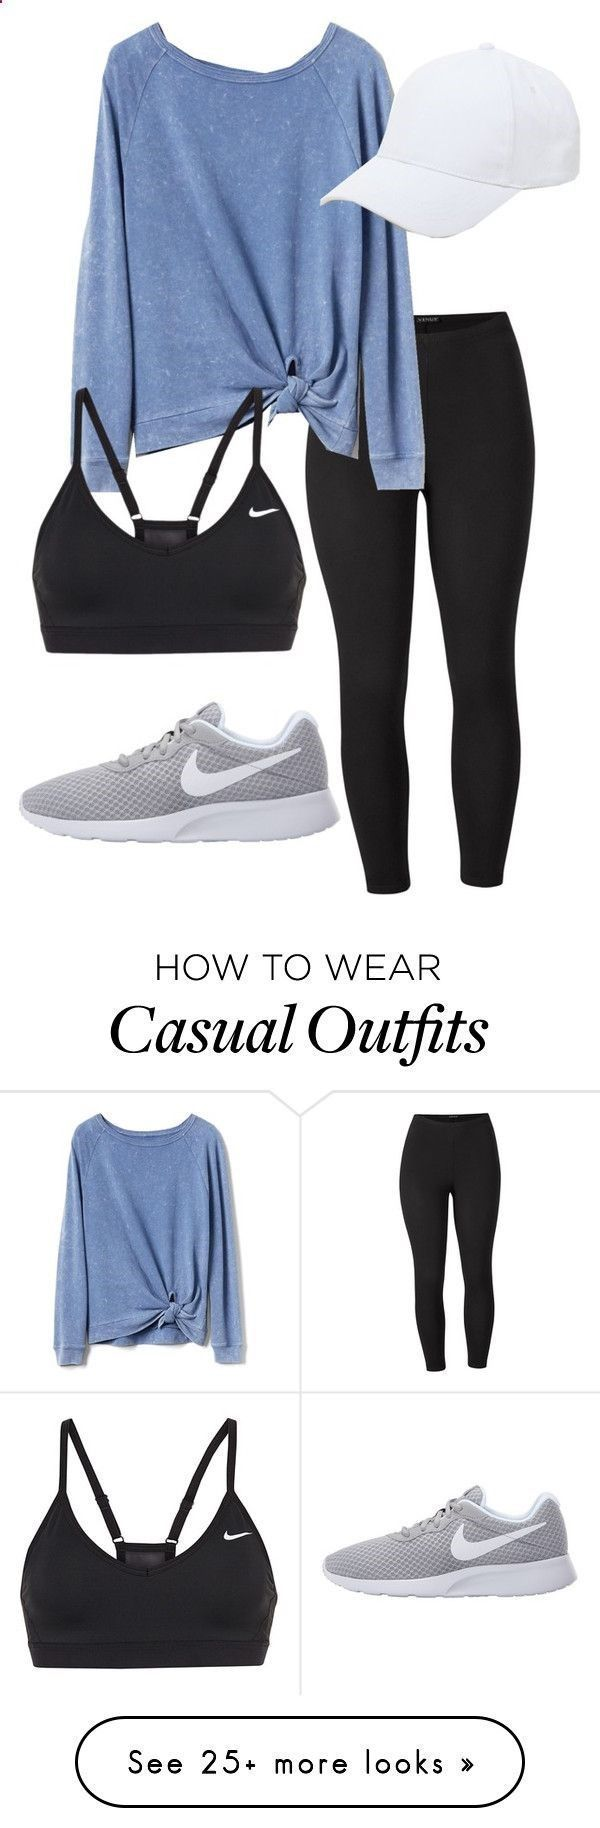 Fitness Clothes Women - Fitness Womens Clothes - Everyday Casual look ✔️ by smhowie on Polyvore featuring Venus, Gap, NIKE, Sole Society and plus size clothing - fitness exercise fitness legging fitness clothes fitness women sportswear womens workout clot #womenfitness #casualwomensclothes